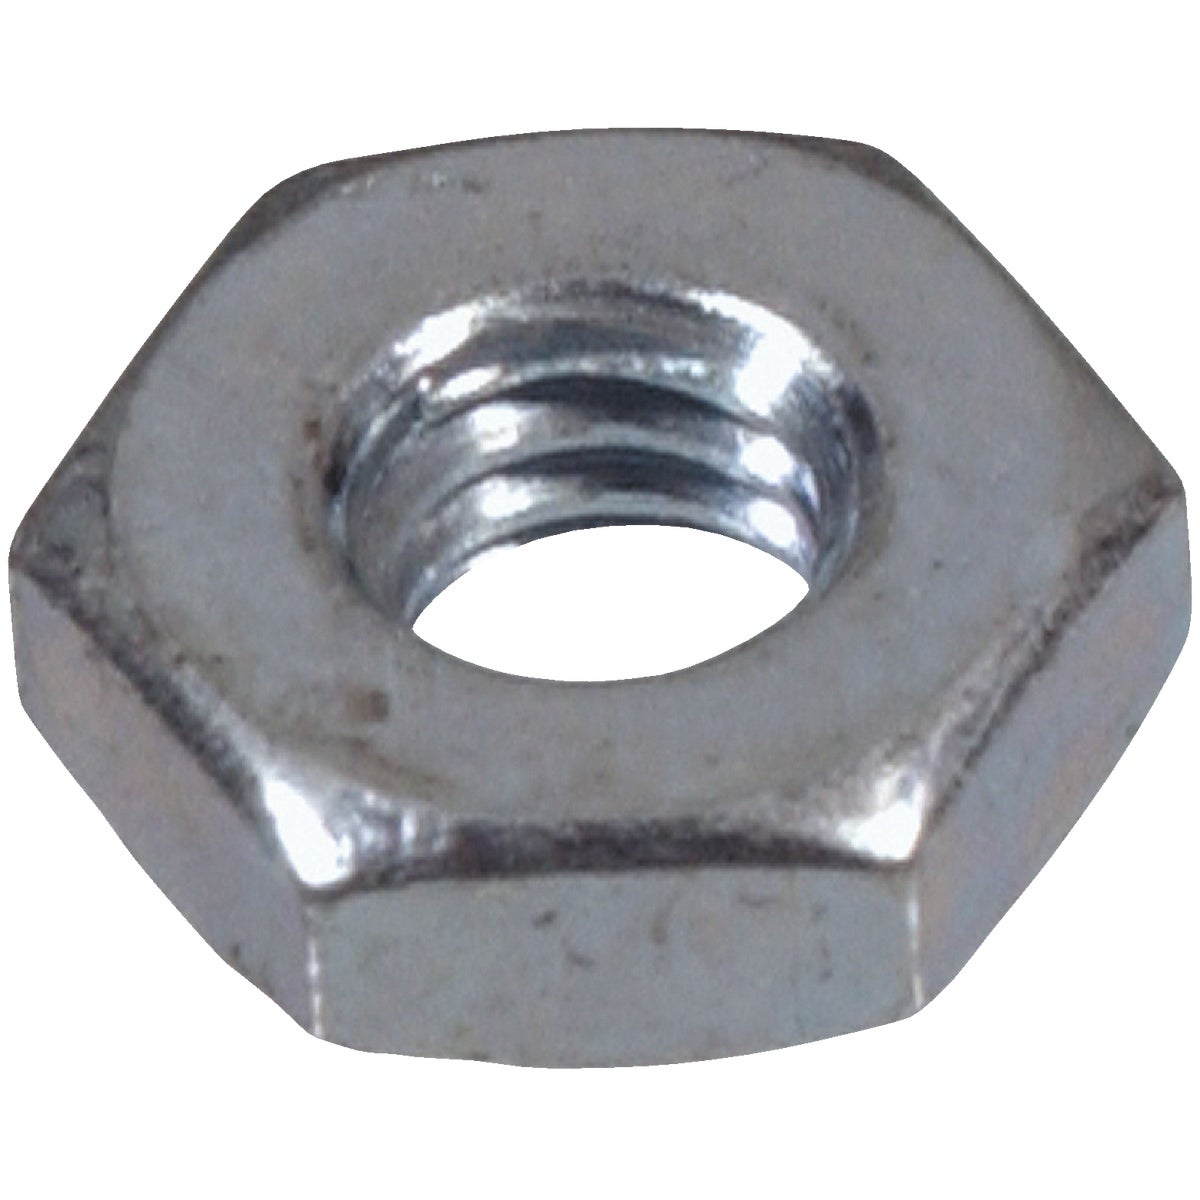 12-24 HEX MACH SCREW NUT - 140027 by Hillman Fastener